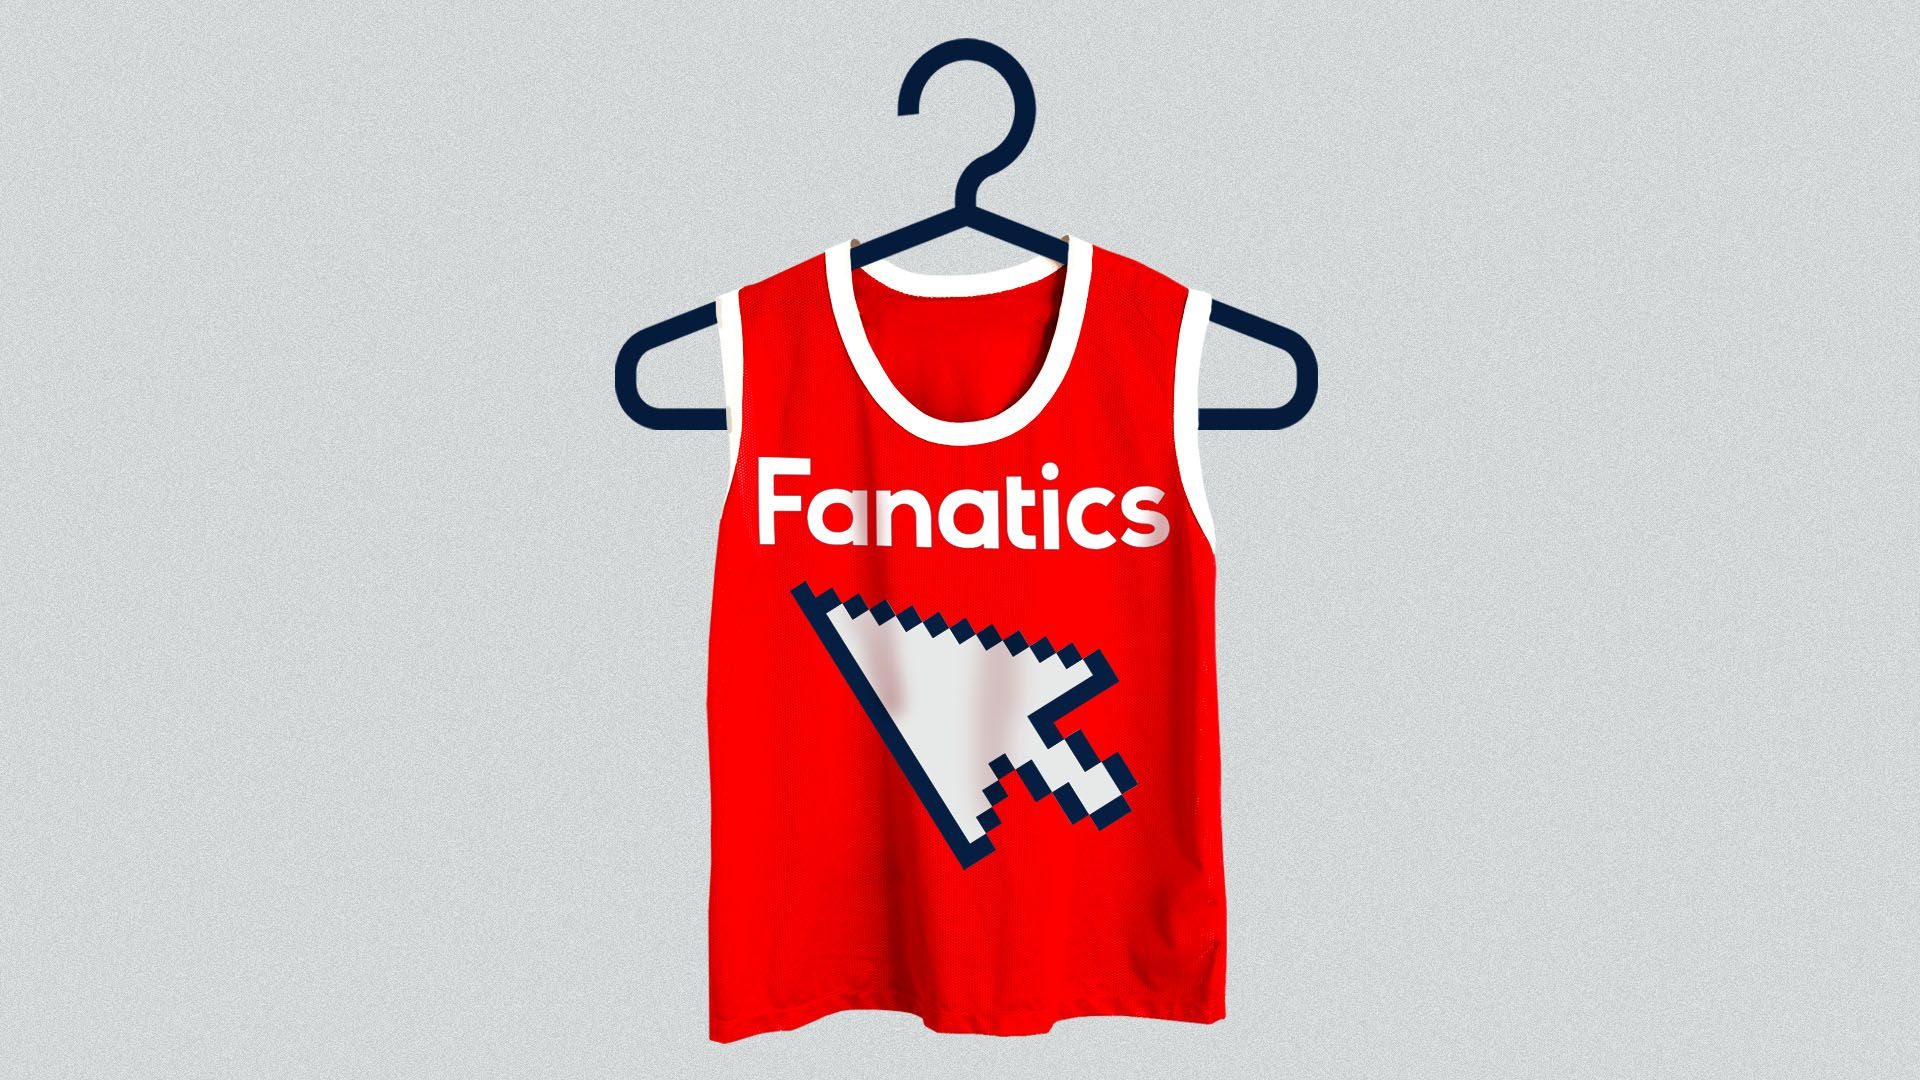 f950b0c62e Illustration of a sports apparel shirt with the Fanatics logo and a cursor  on it